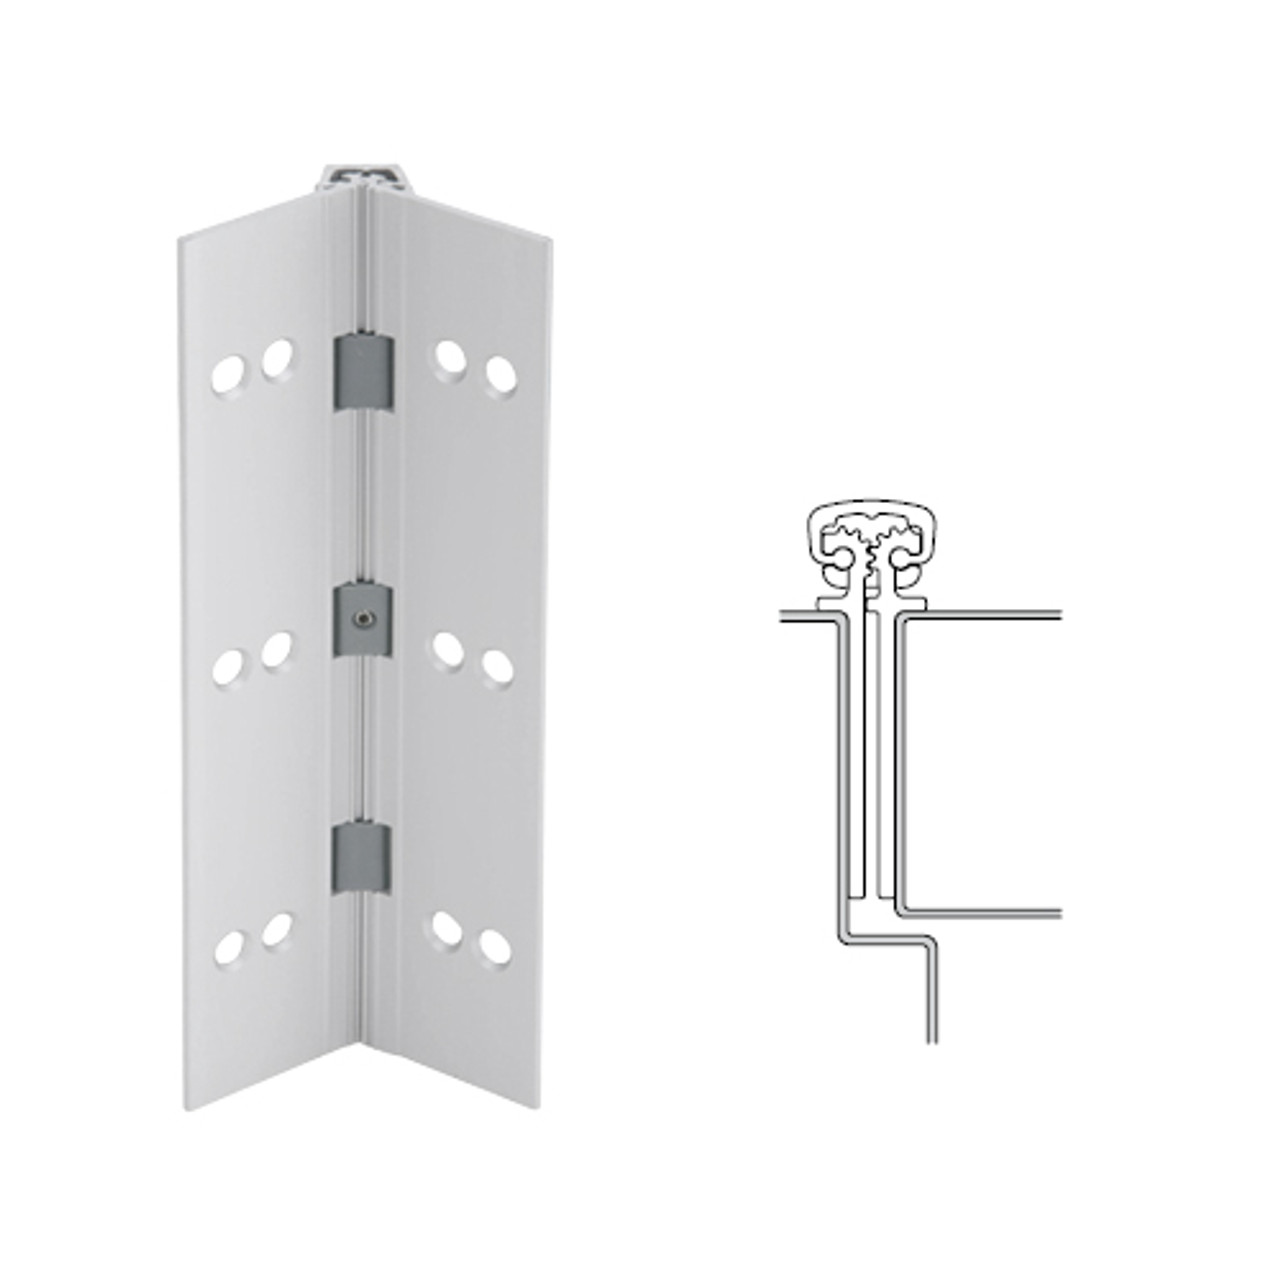 027XY-US28-95-EPT IVES Full Mortise Continuous Geared Hinges with Electrical Power Transfer Prep in Satin Aluminum